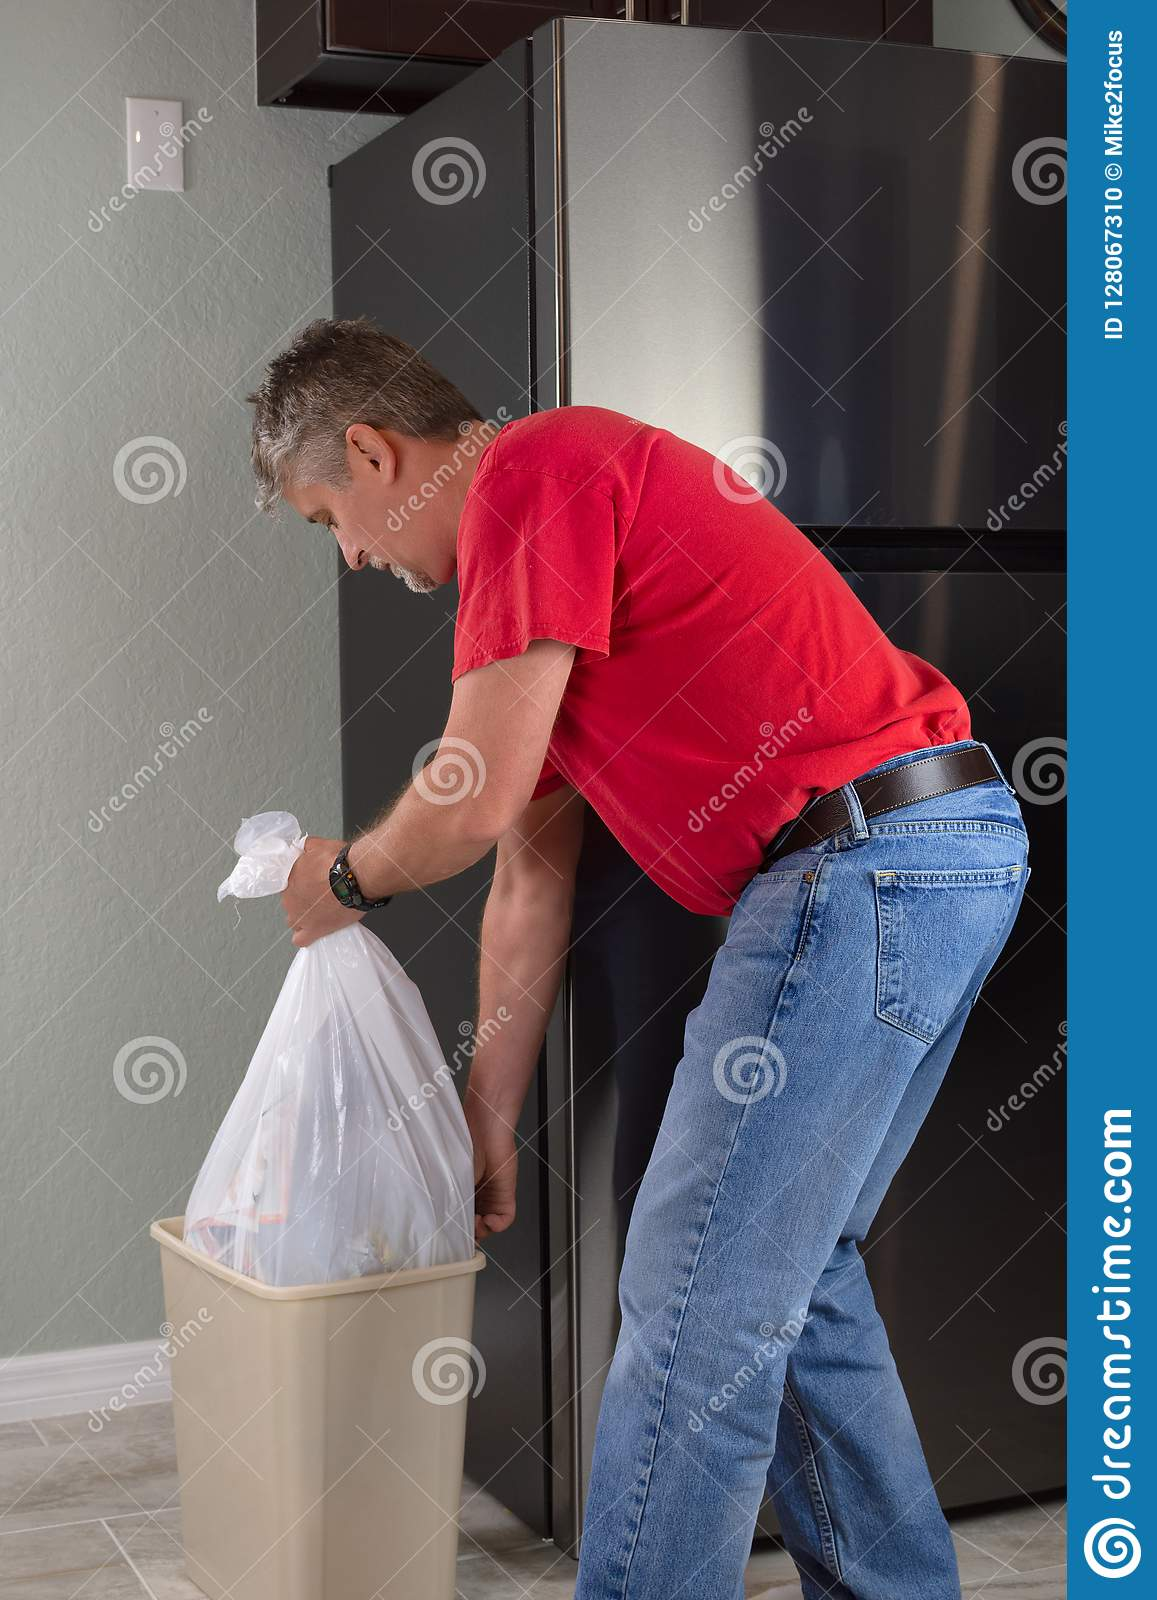 Man emptying trash bag bin container in kitchen to take it out to garbage can